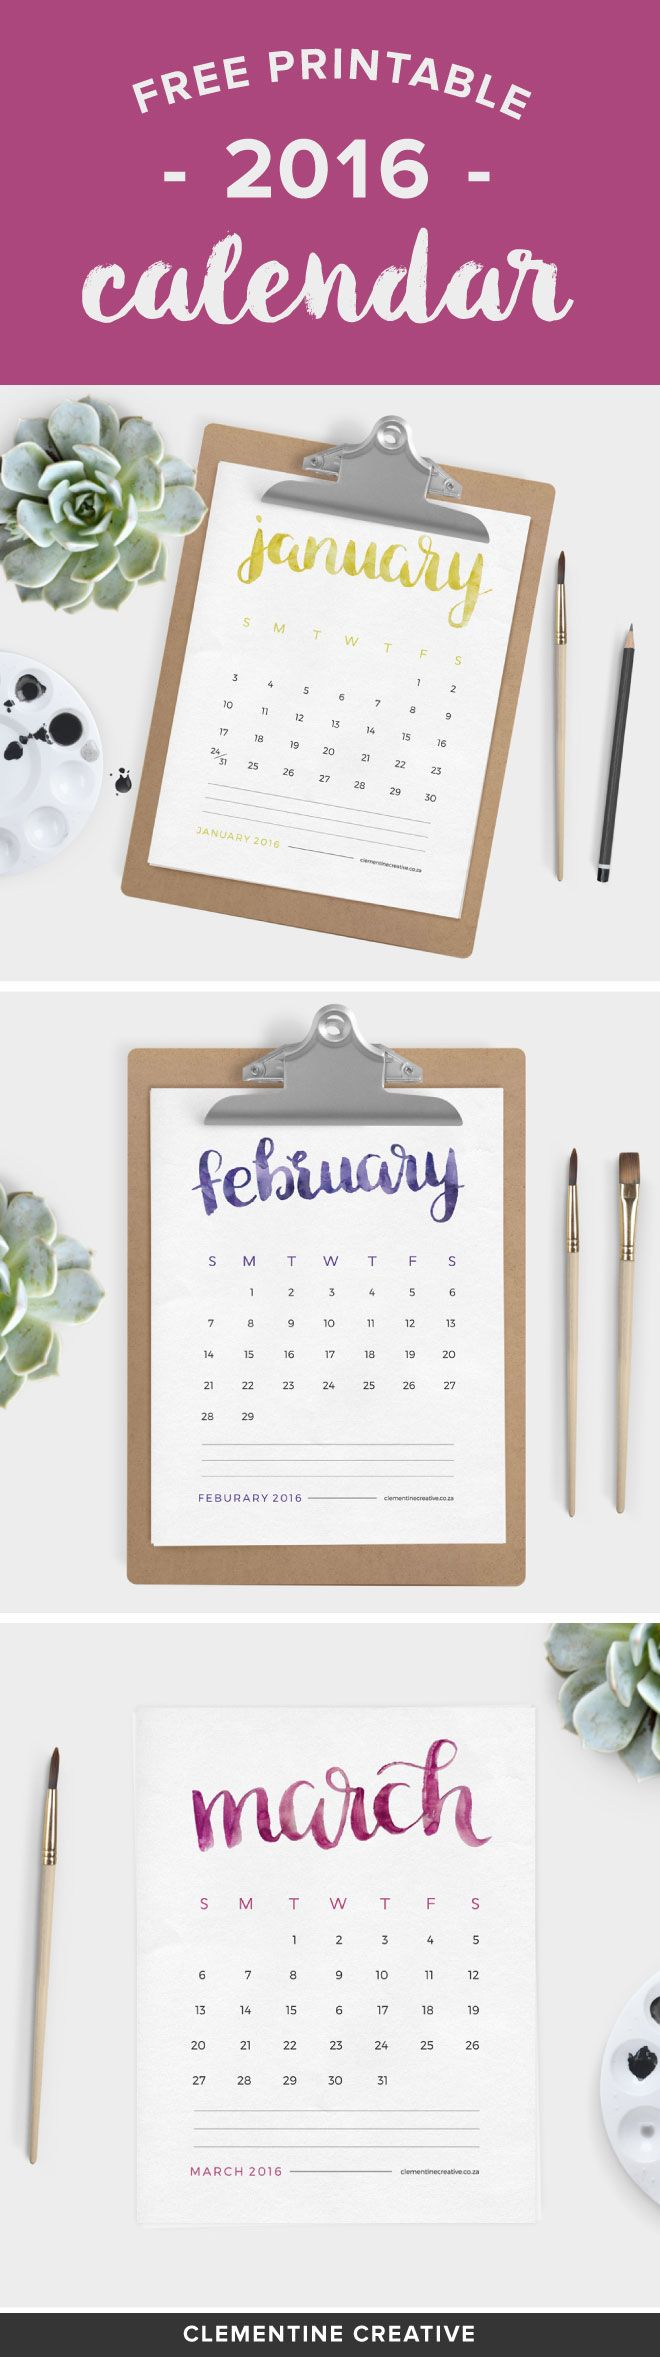 This free printable 2016 calendar will brighten up your desk area. Each month name is painted by hand with watercolor paint.